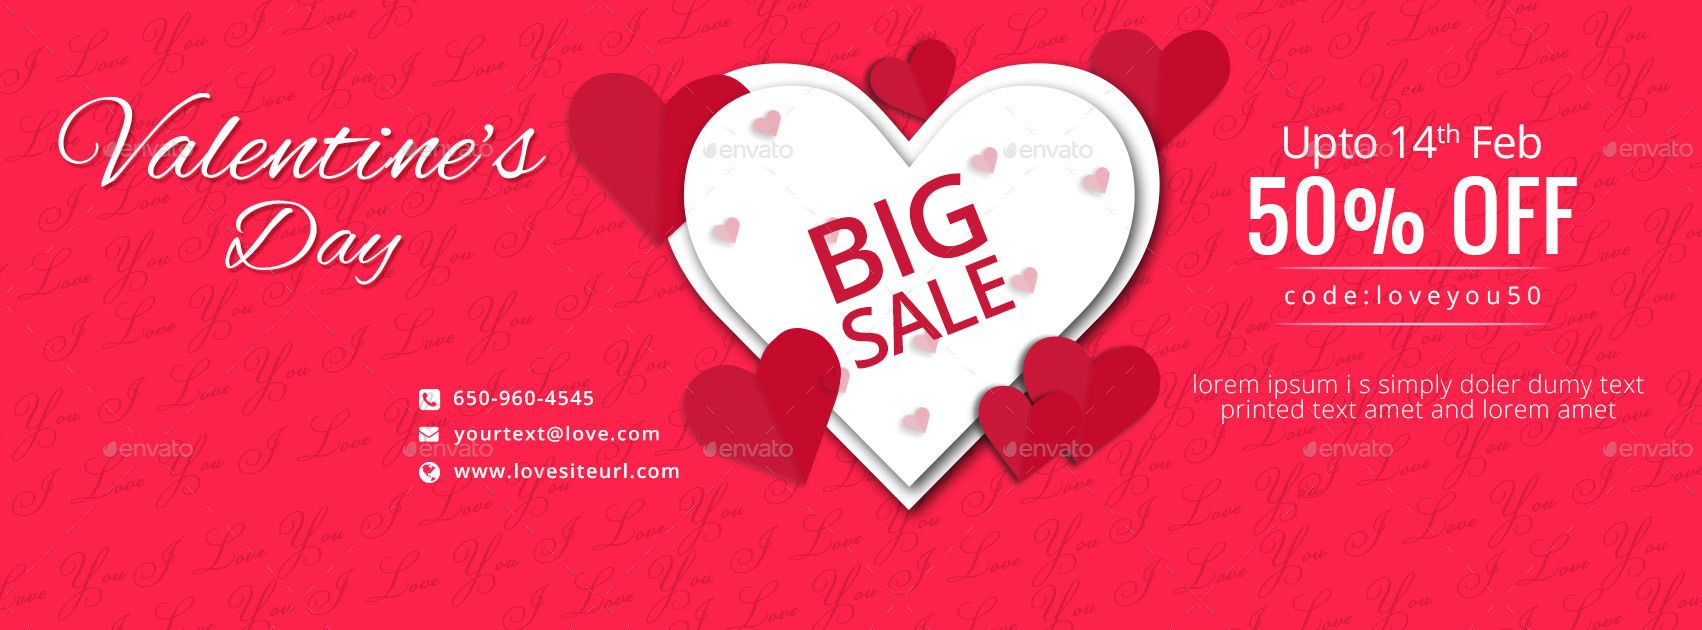 Valentine S Day Facebook Covers 3 Designs Facebook Cover Valentines Business Card Logo